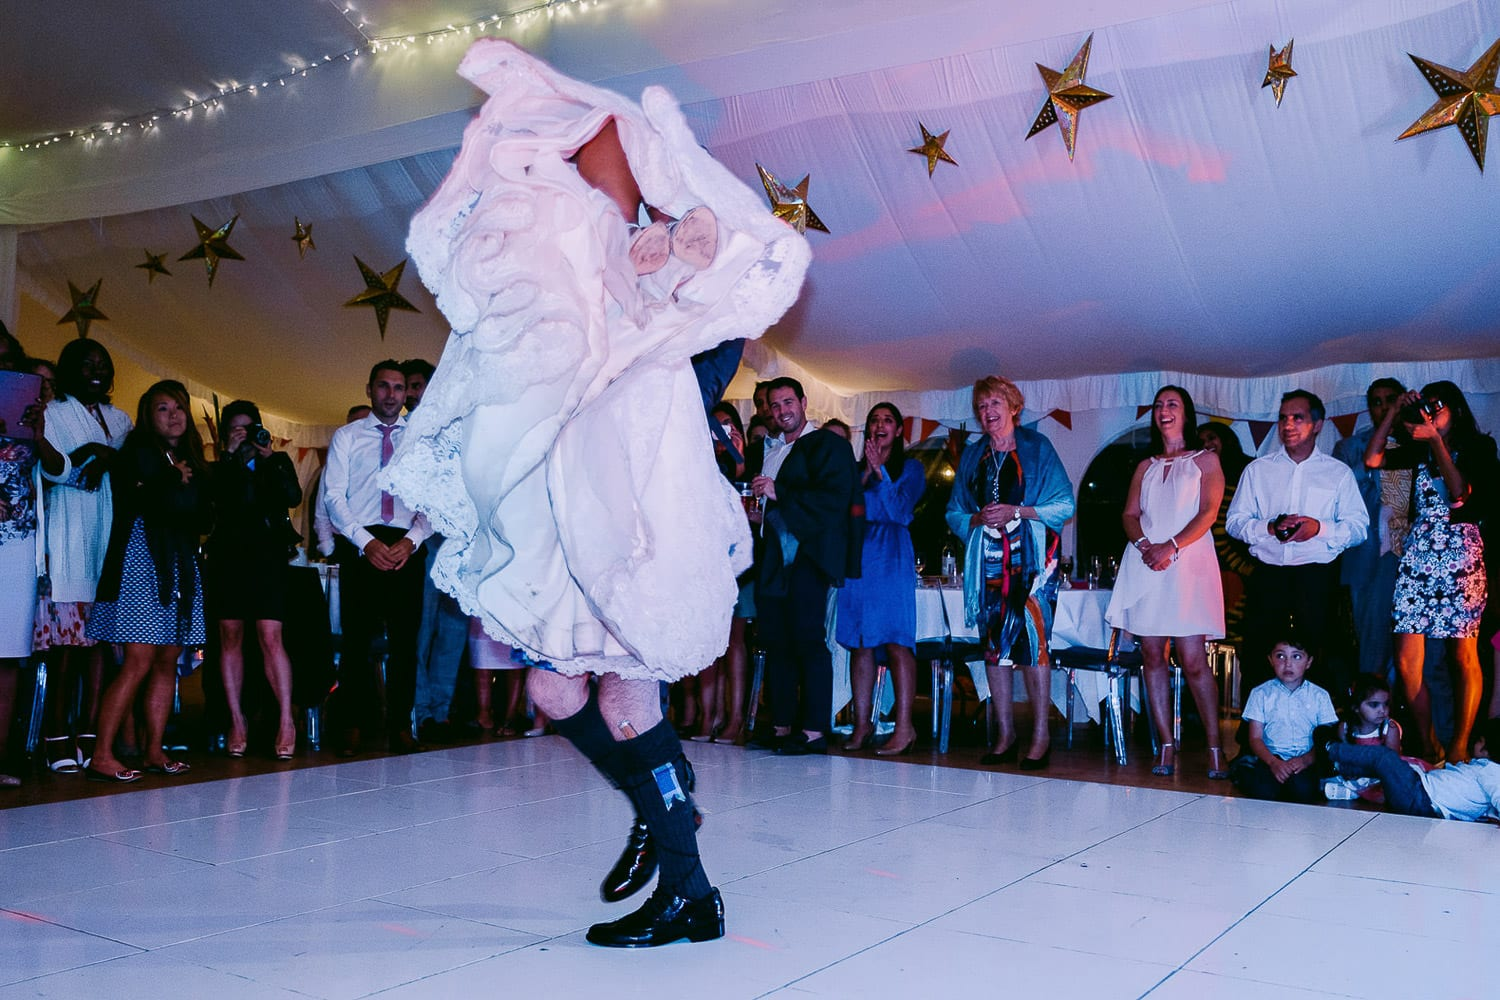 The bride and groom merge into one when he lifts her up on the dance floor